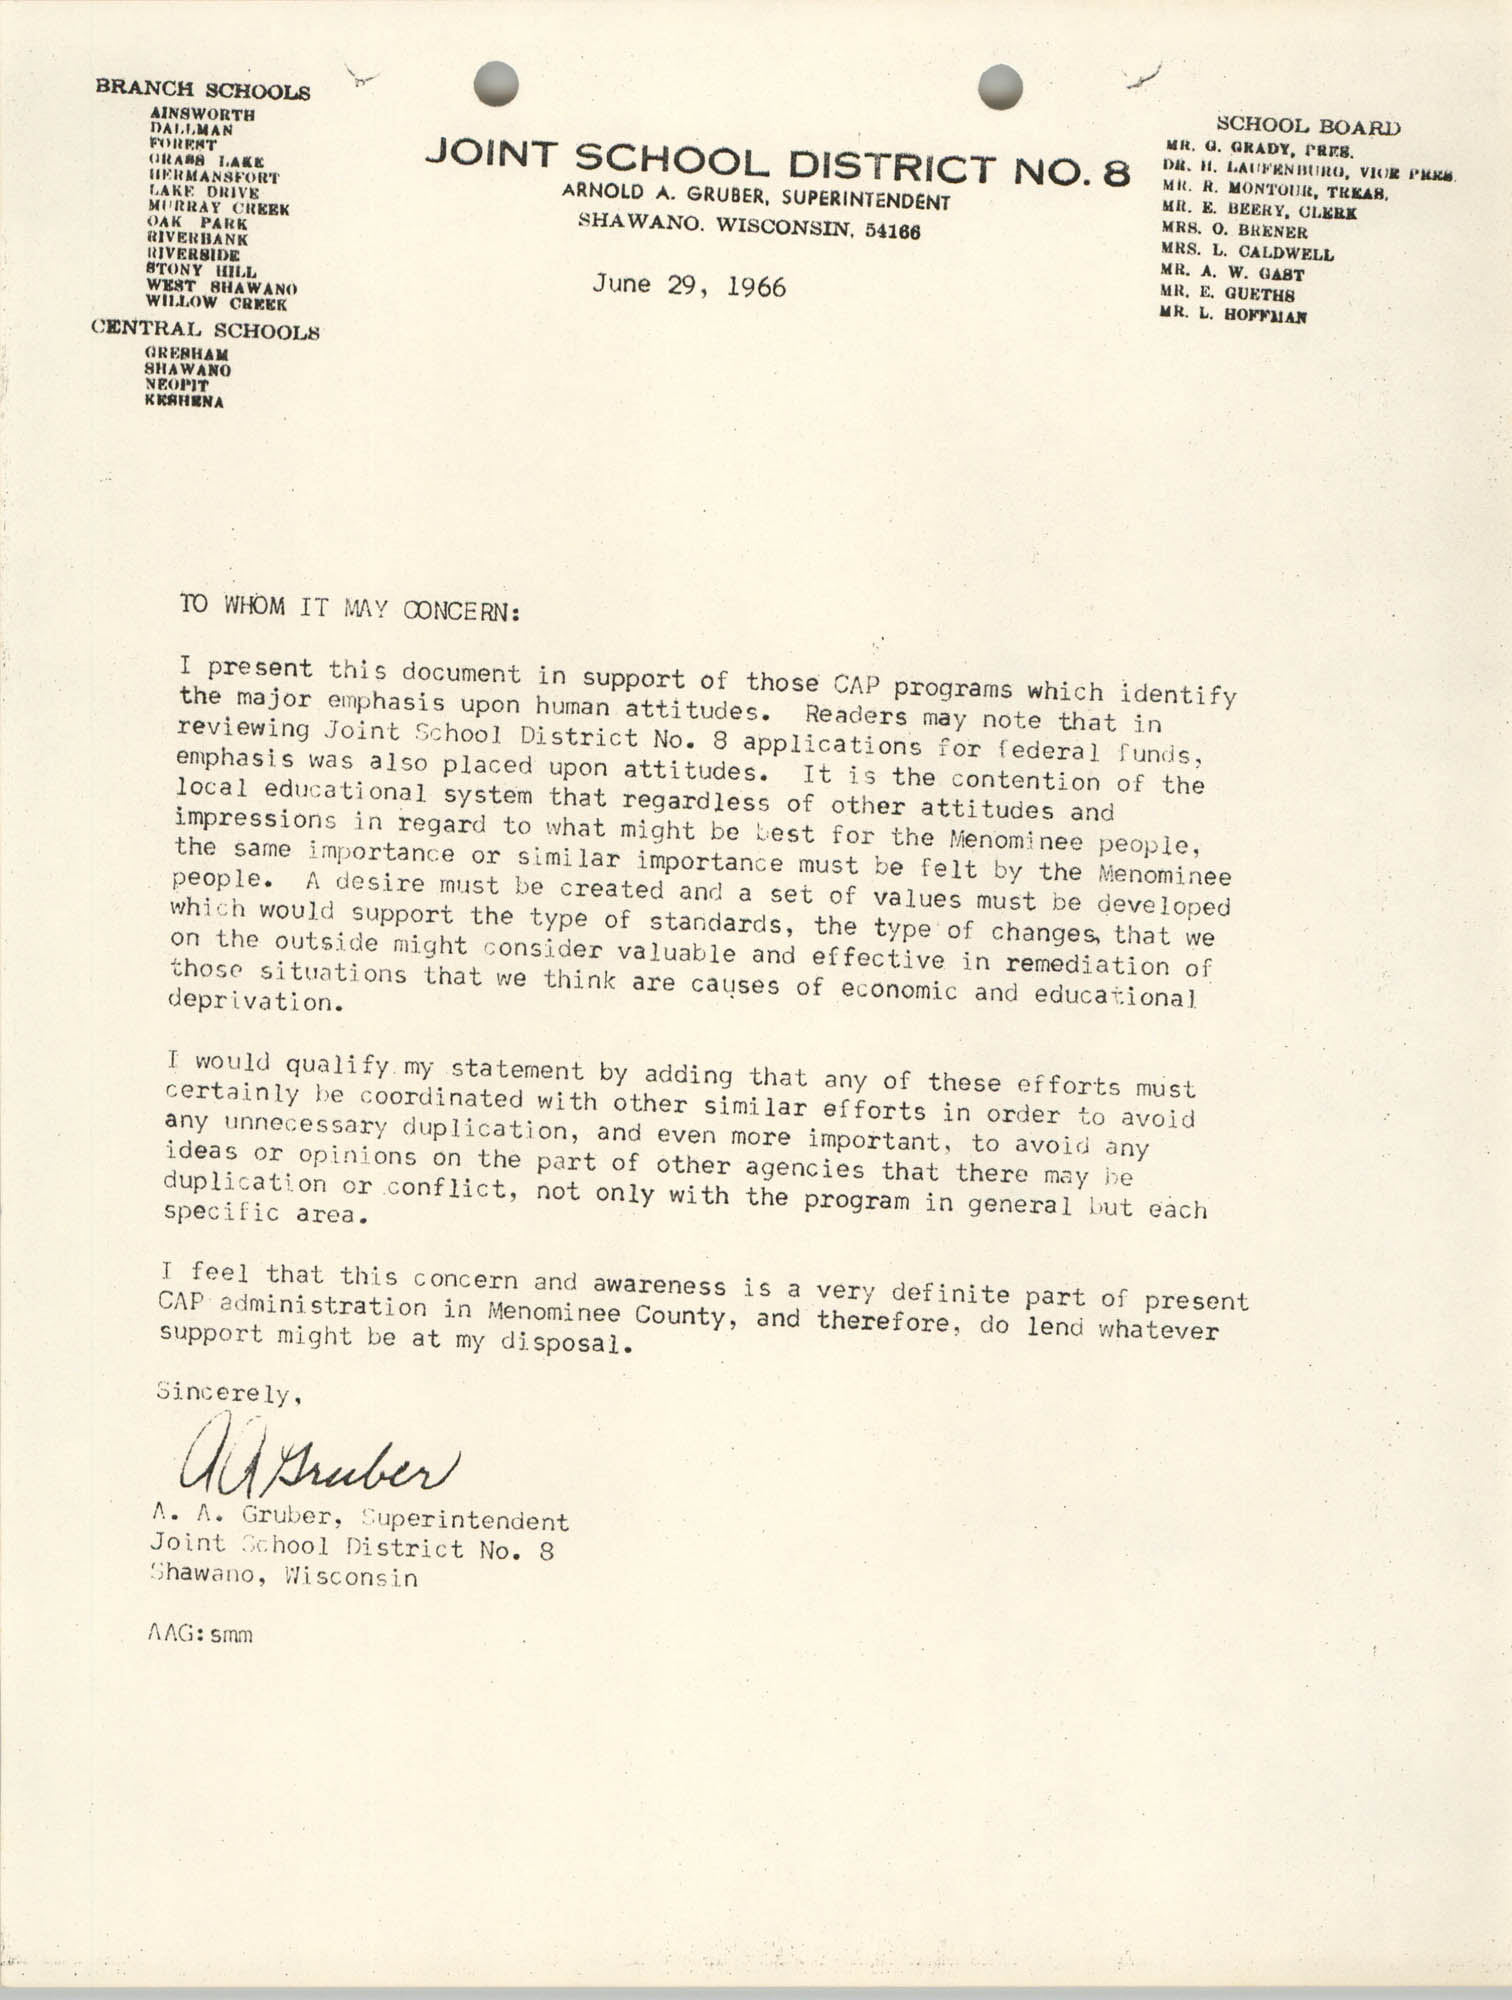 Letter from A. A. Gruber to